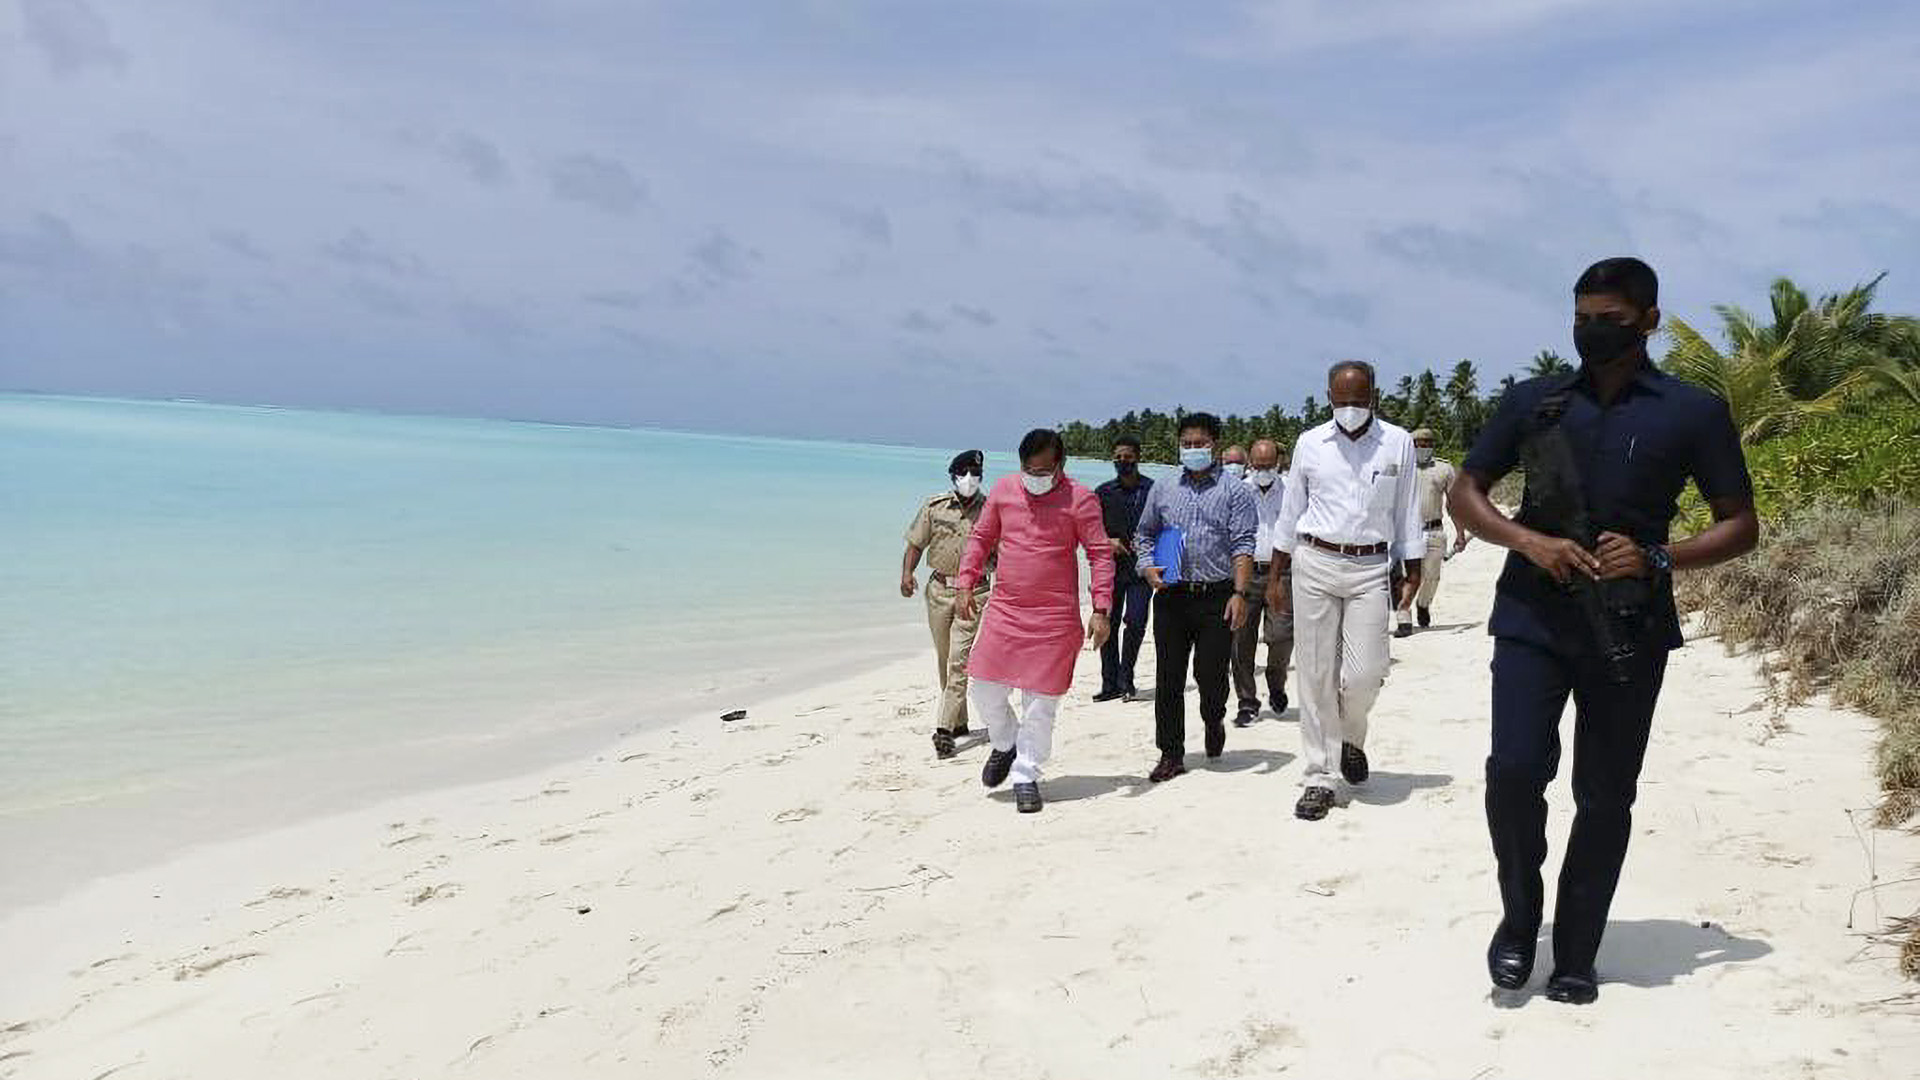 Water Villas At Cost Of $107 Million To Be Set Up In Indian Island